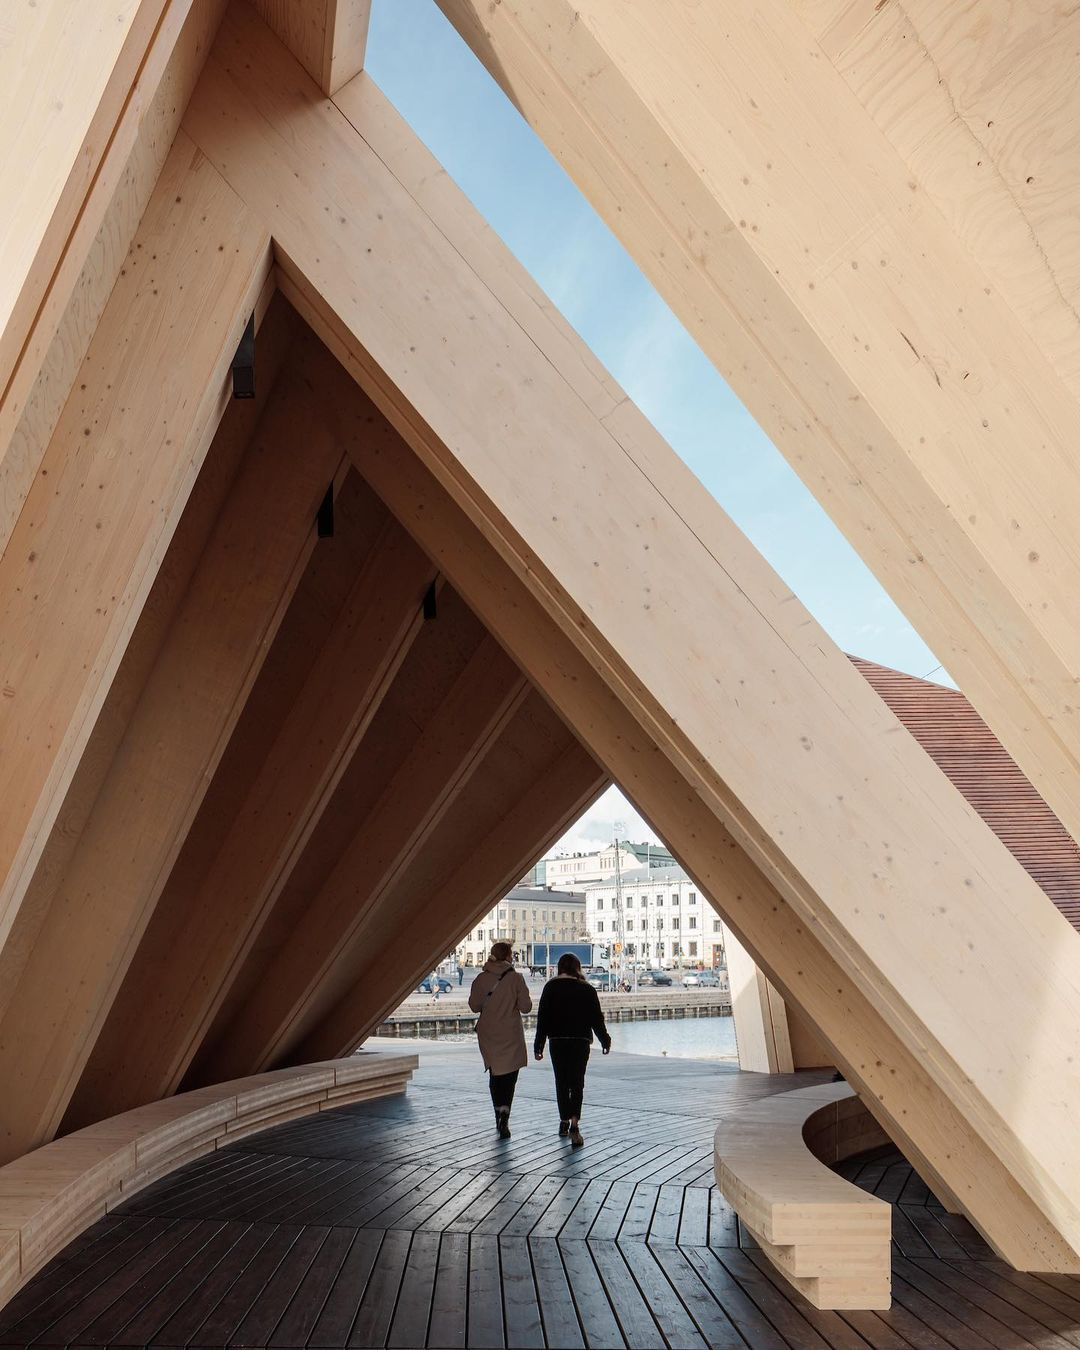 Two figures walking through the dynamic linear wood structure of the Helsinki Biennial Pavilion